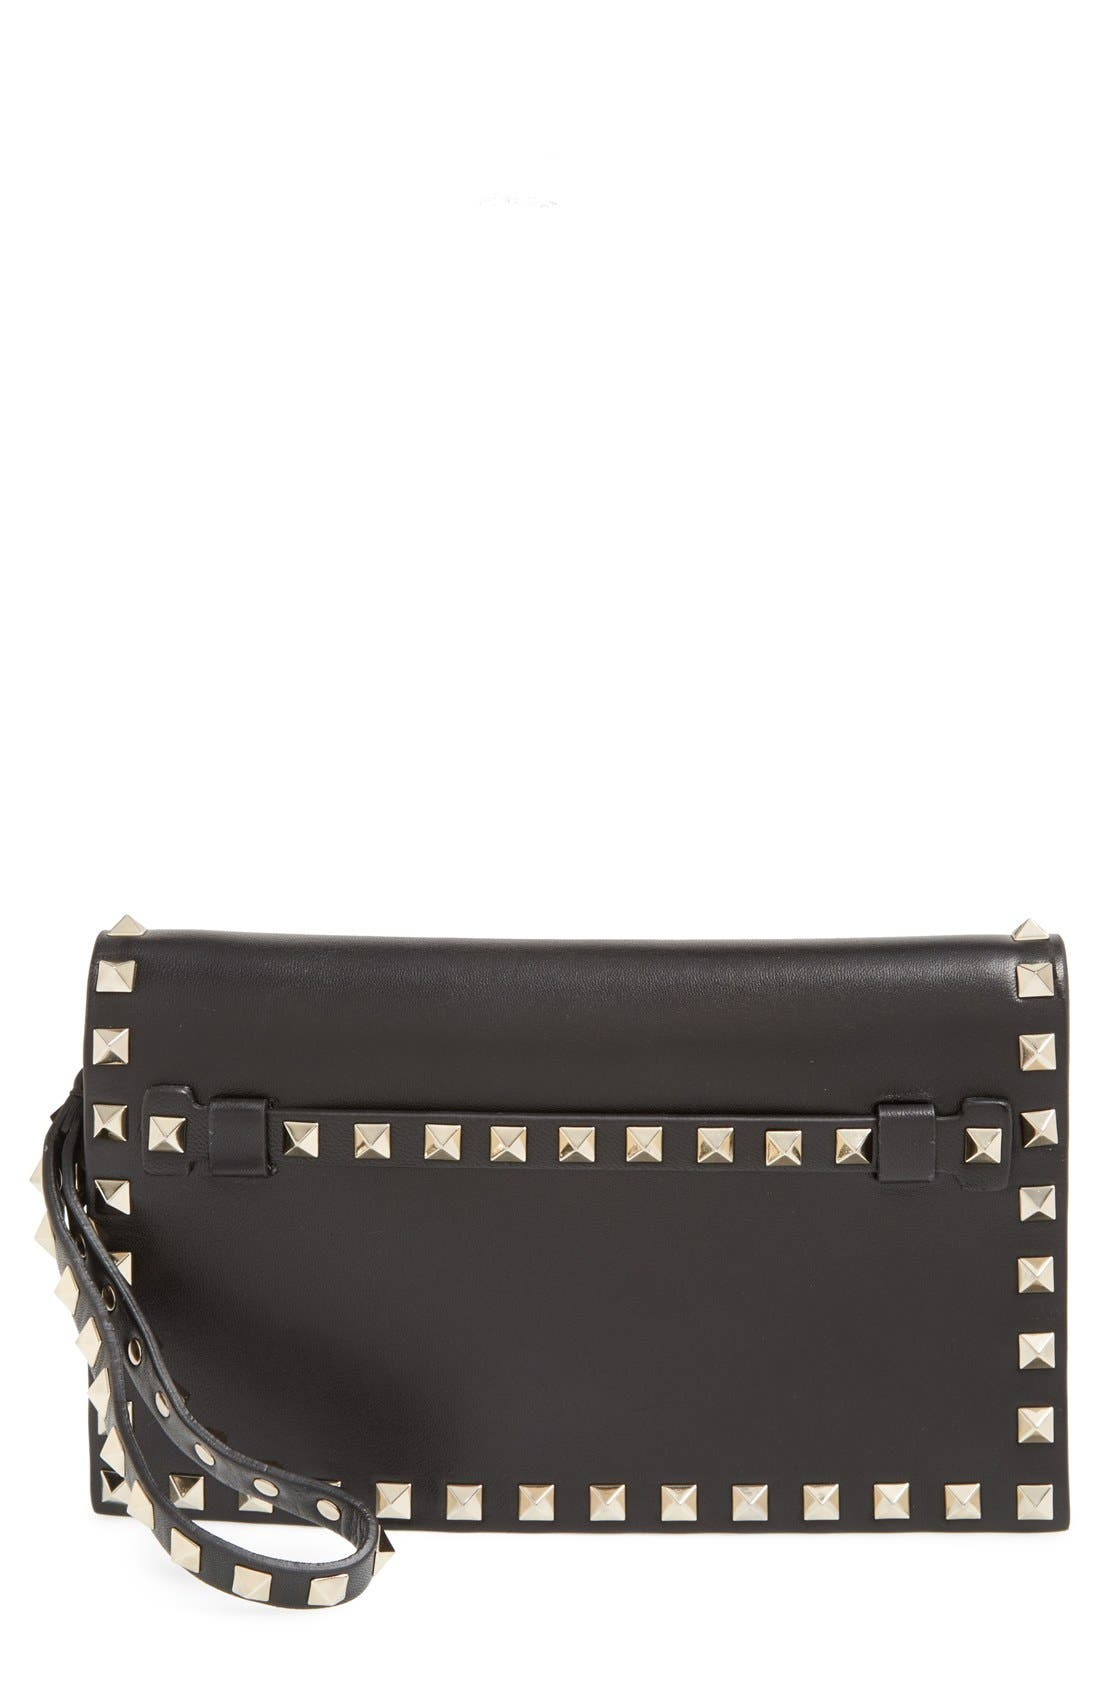 Alternate Image 1 Selected - Valentino 'Small Rockstud' Leather Flap Clutch